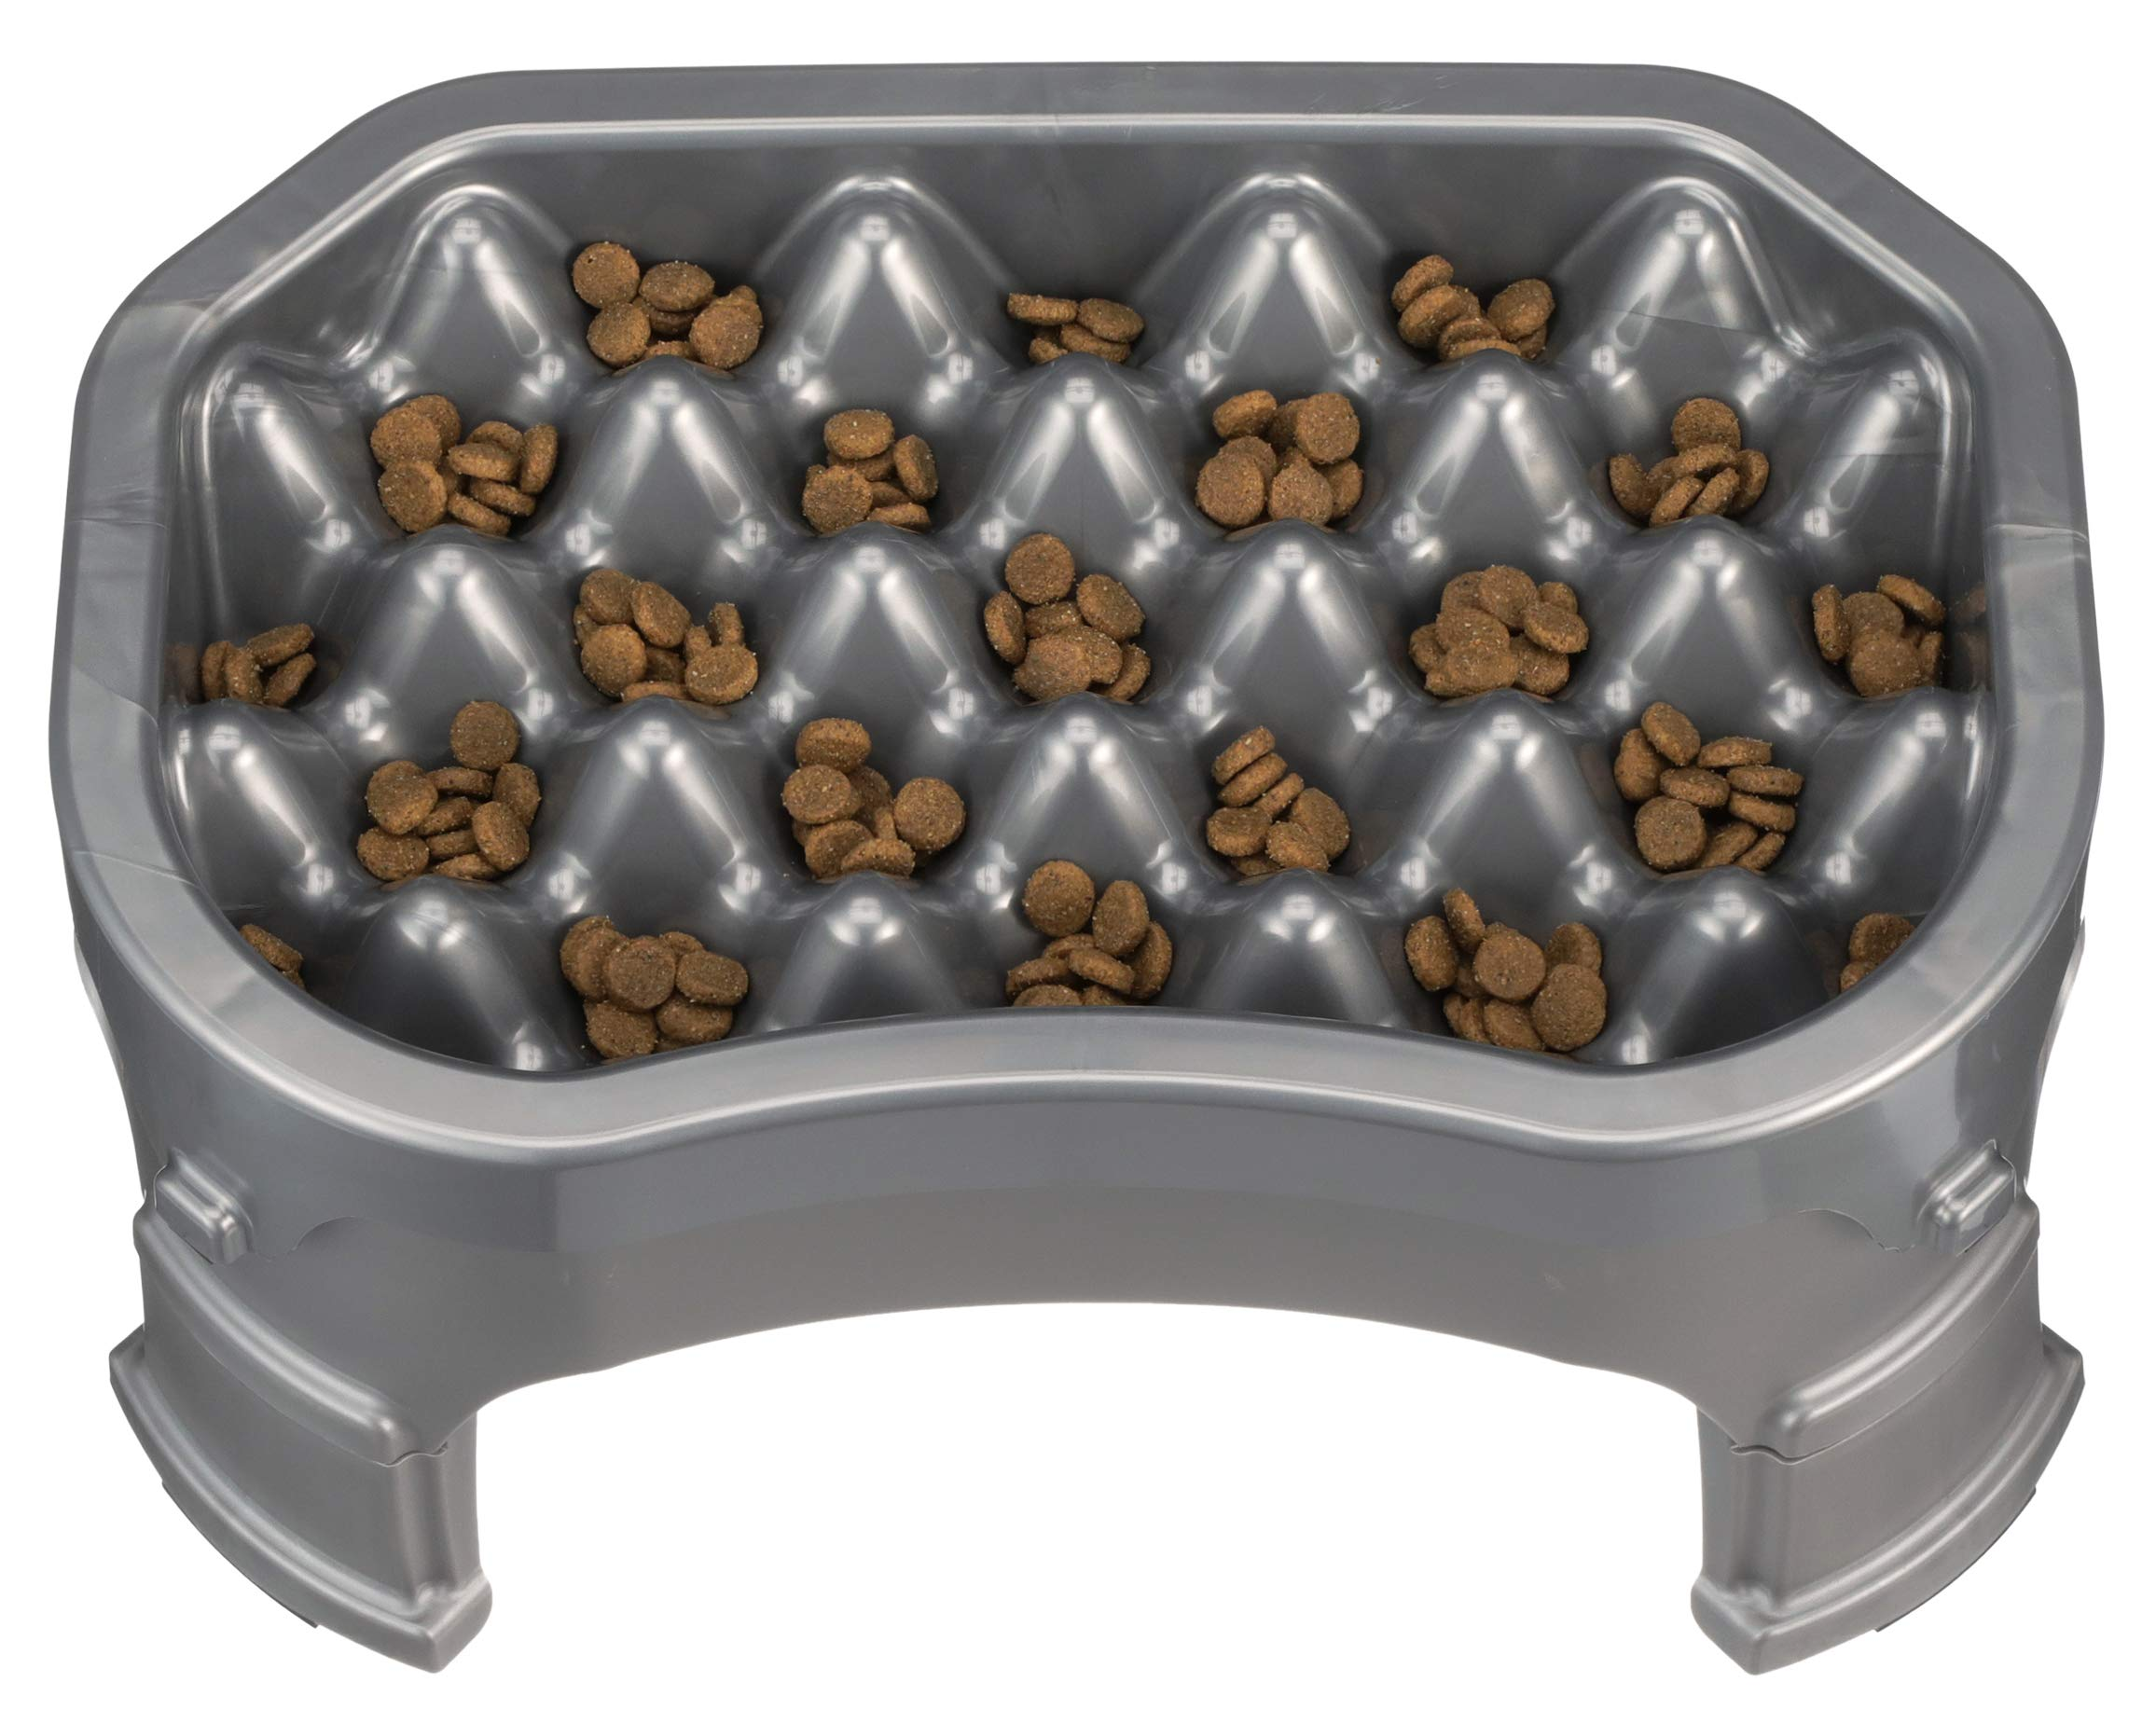 Neater Pet Brands Neater Slow Feeder & Accessories - Gentle Slow Feeding Bowl for Dogs and Cats - Non Skid Feet (Neater Slow Feeder + Big Bowl Base + Legs, Gunmetal) by Neater Pet Brands